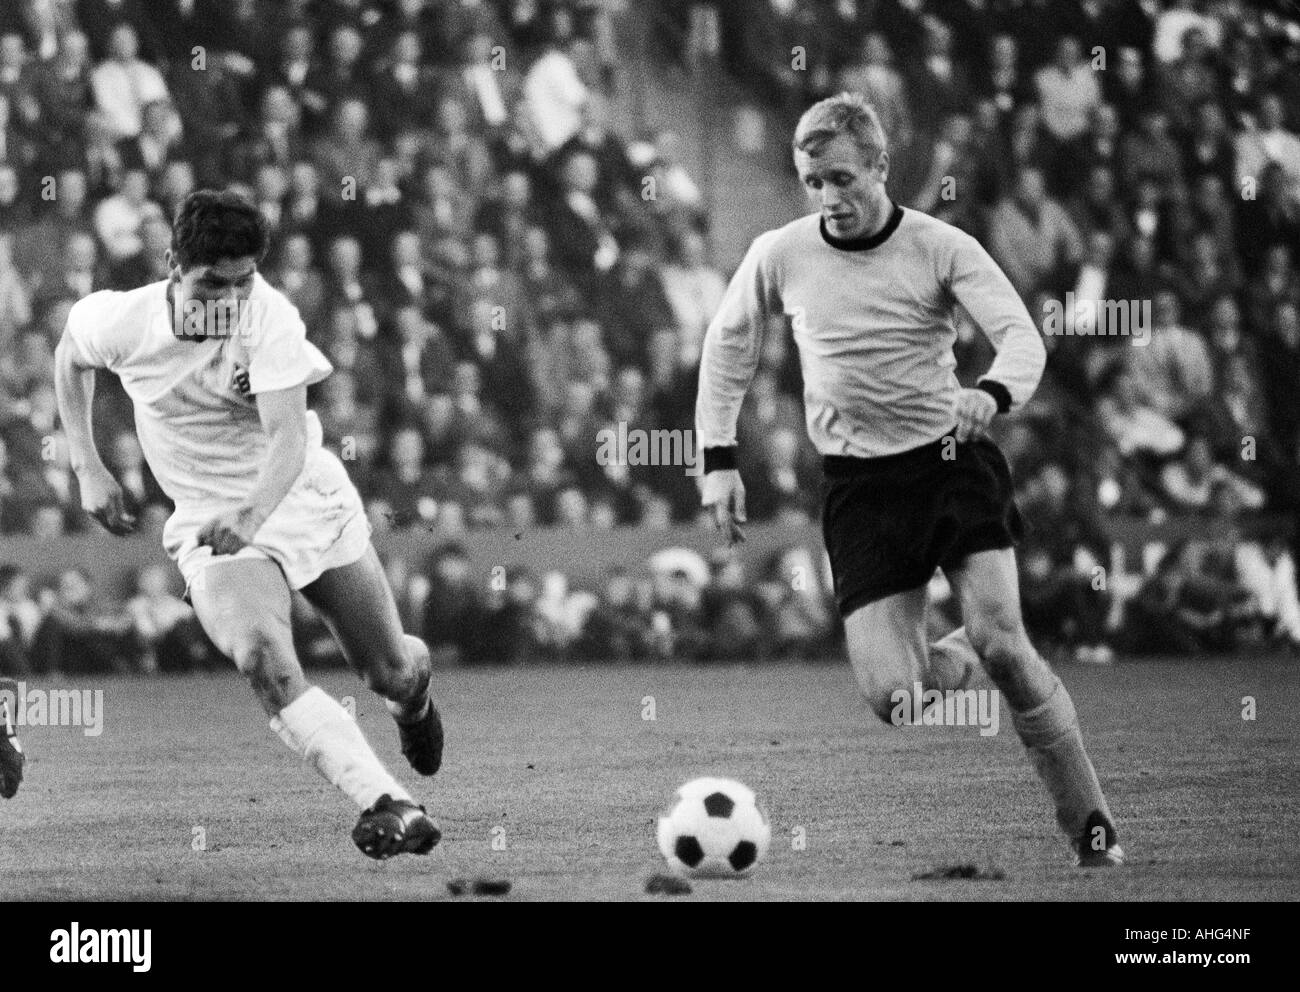 football, Bundesliga, 1967/1968, Borussia Moenchengladbach versus Borussia Dortmund 2:2, Boekelberg Stadium, scene of the match, duel between Heinz Wittmann (Gladbach) left and Siegfried Held (BVB) - Stock Image